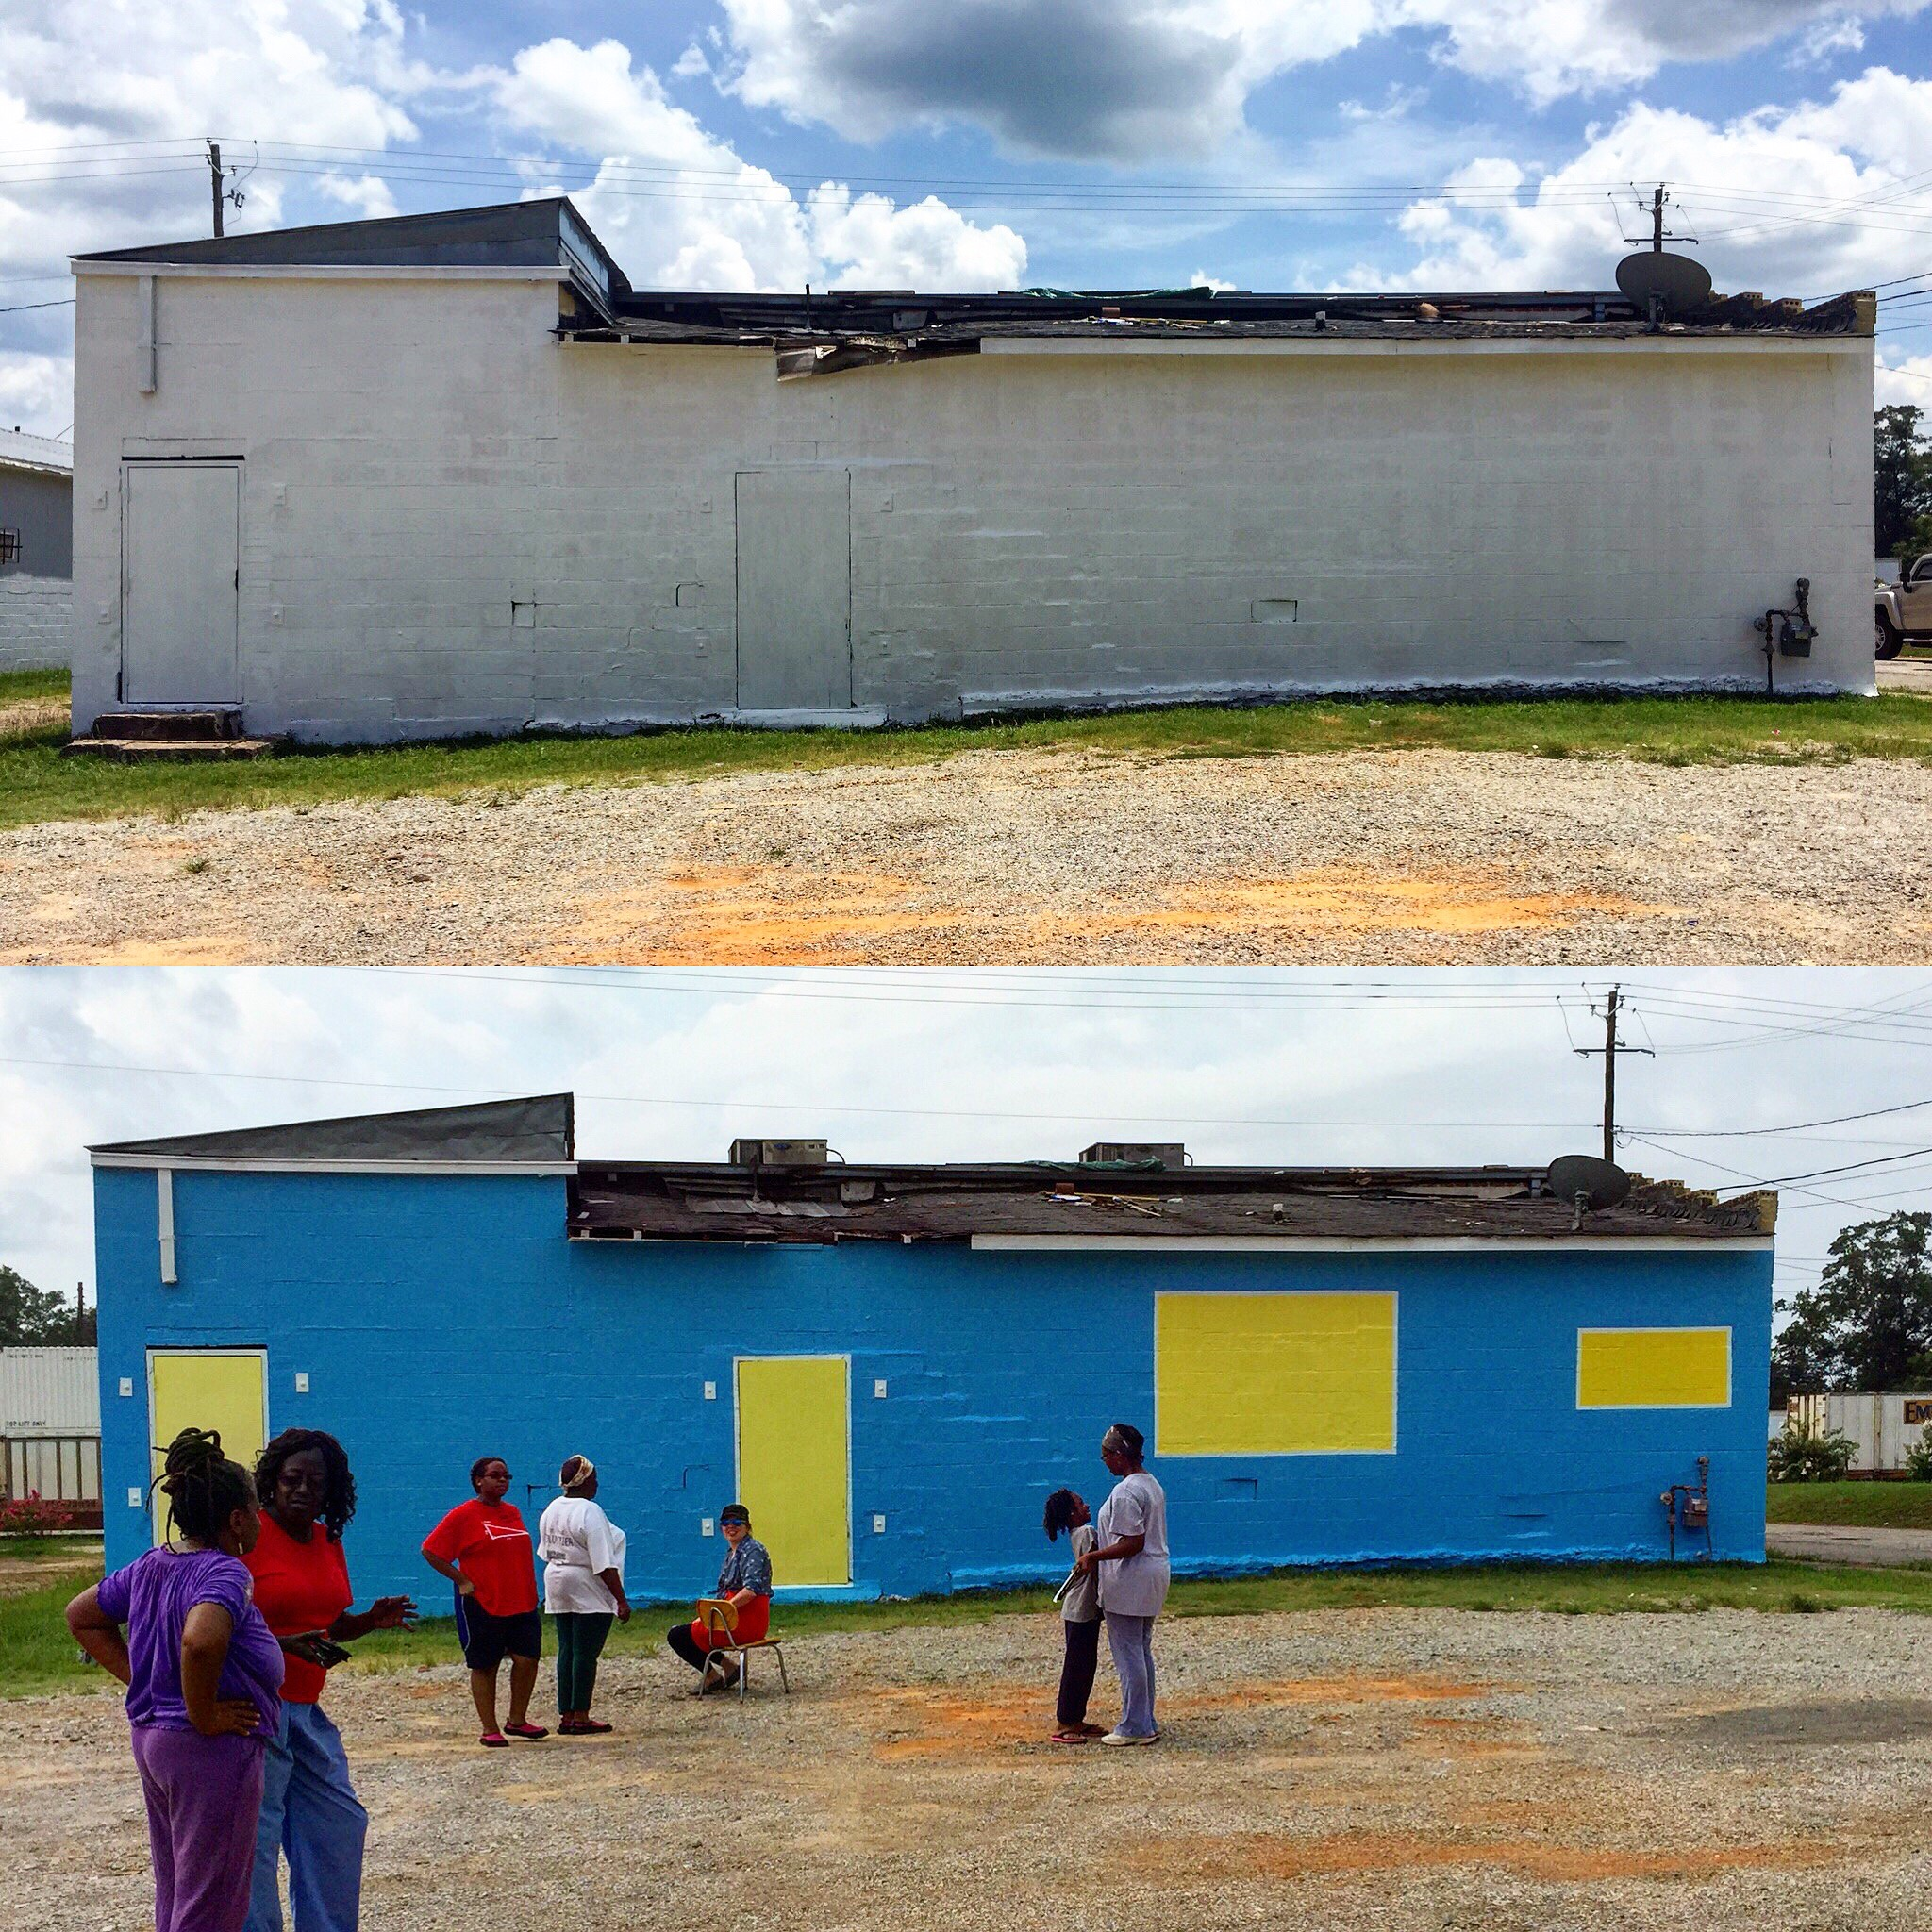 Another low-stakes proof of concept: back side of Tee's Lounge before (primed) and after, July 2015